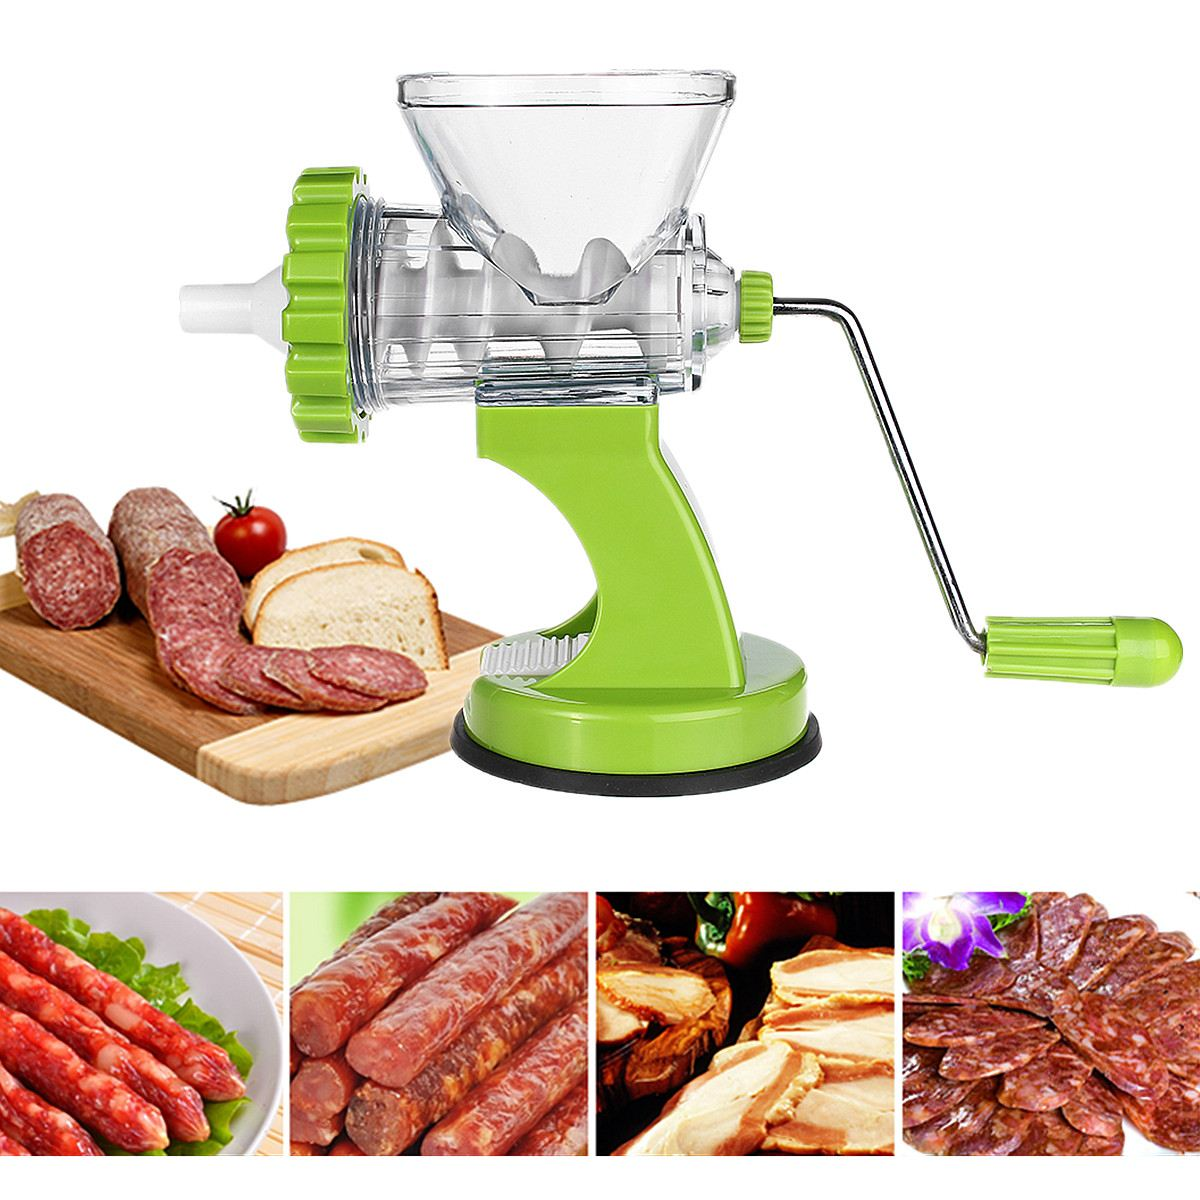 Multifunction Manual Meat Grinder Mincer Slicer Machine With Stainless Steel Blade/Tomato Vegetable Chopper Appliances For Home